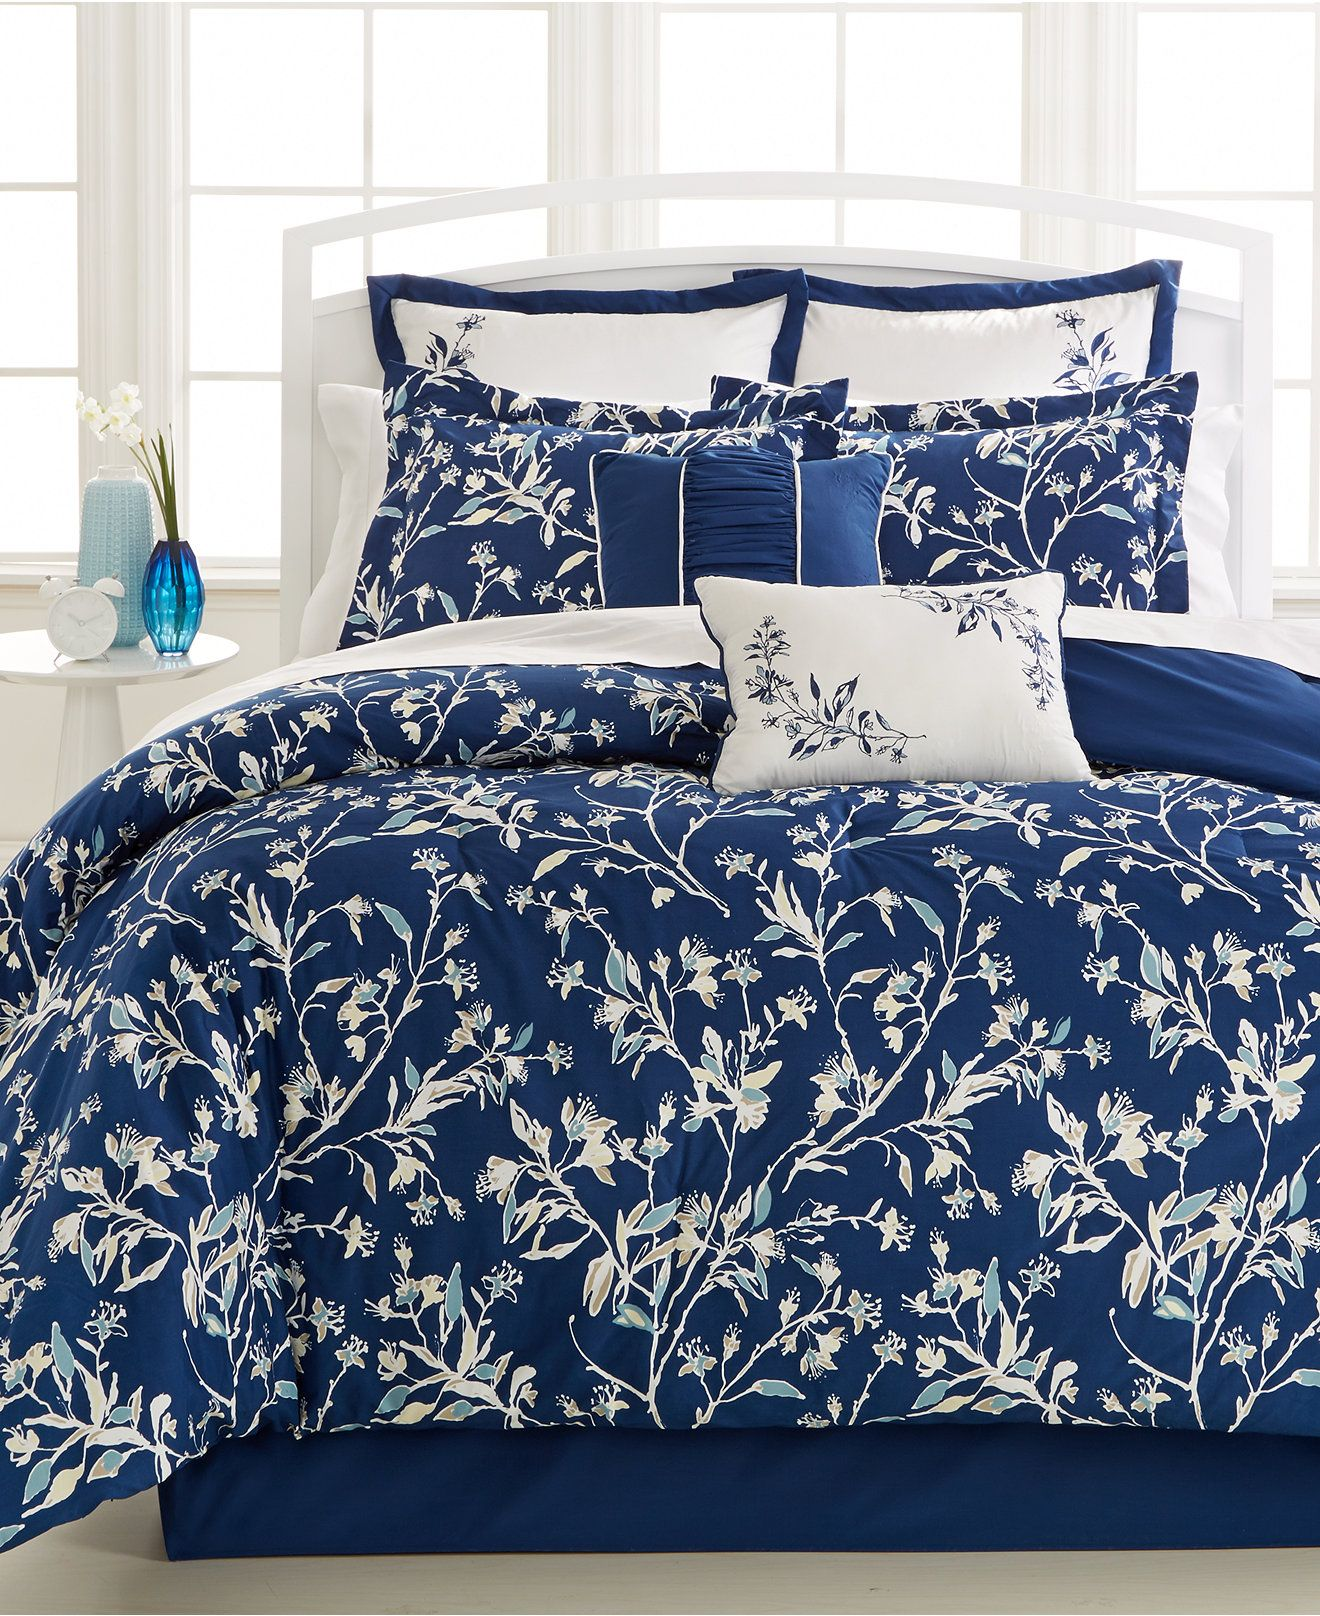 Carina 8 Piece Comforter Set Bed In A Bag Bed Bath Macy S